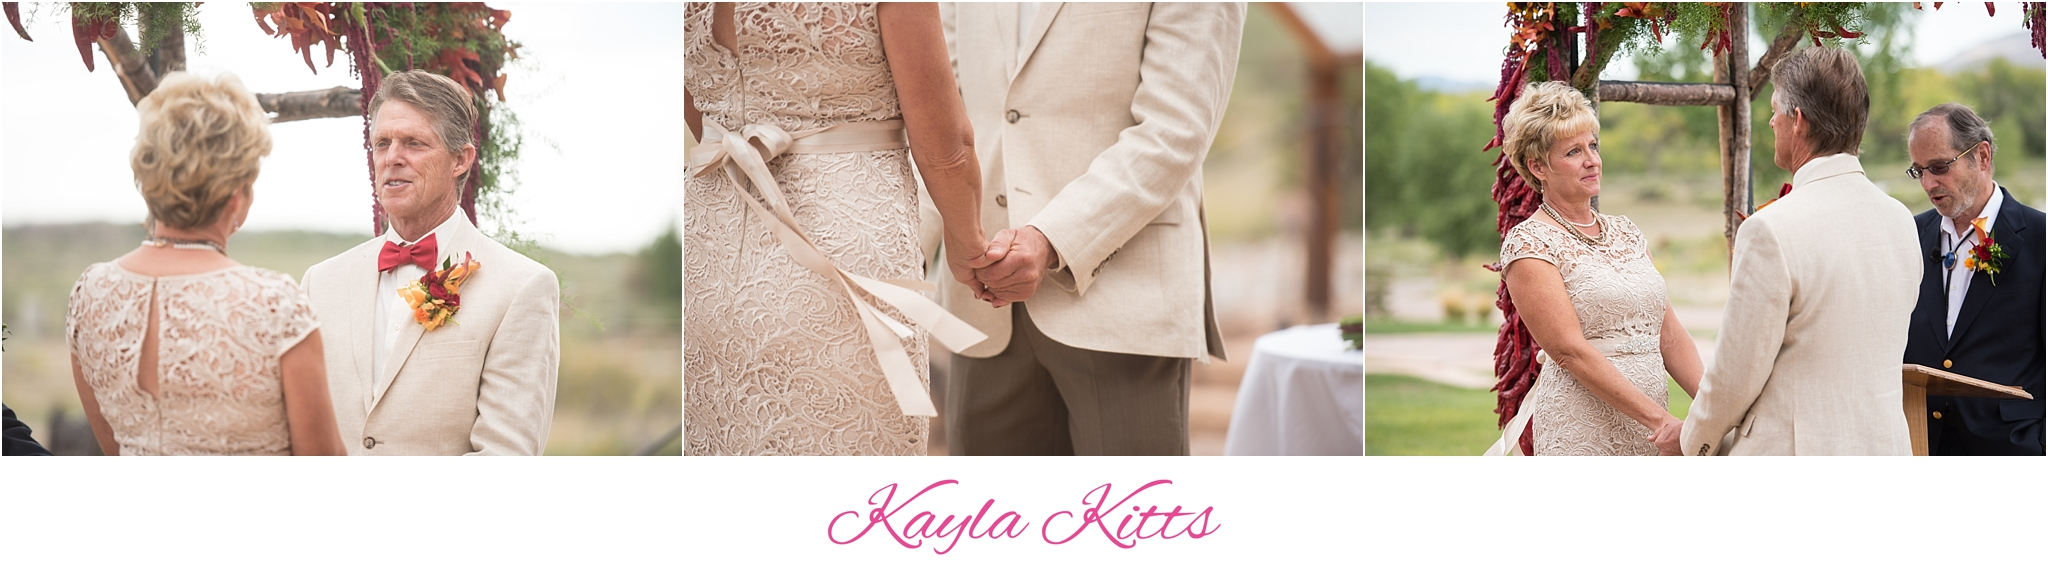 kayla kitts photography - albuquerque wedding photographer - albuquerque wedding photography - albuquerque venue - hyatt tamaya - hyatt tamaya wedding - new mexico wedding photographer_0047.jpg